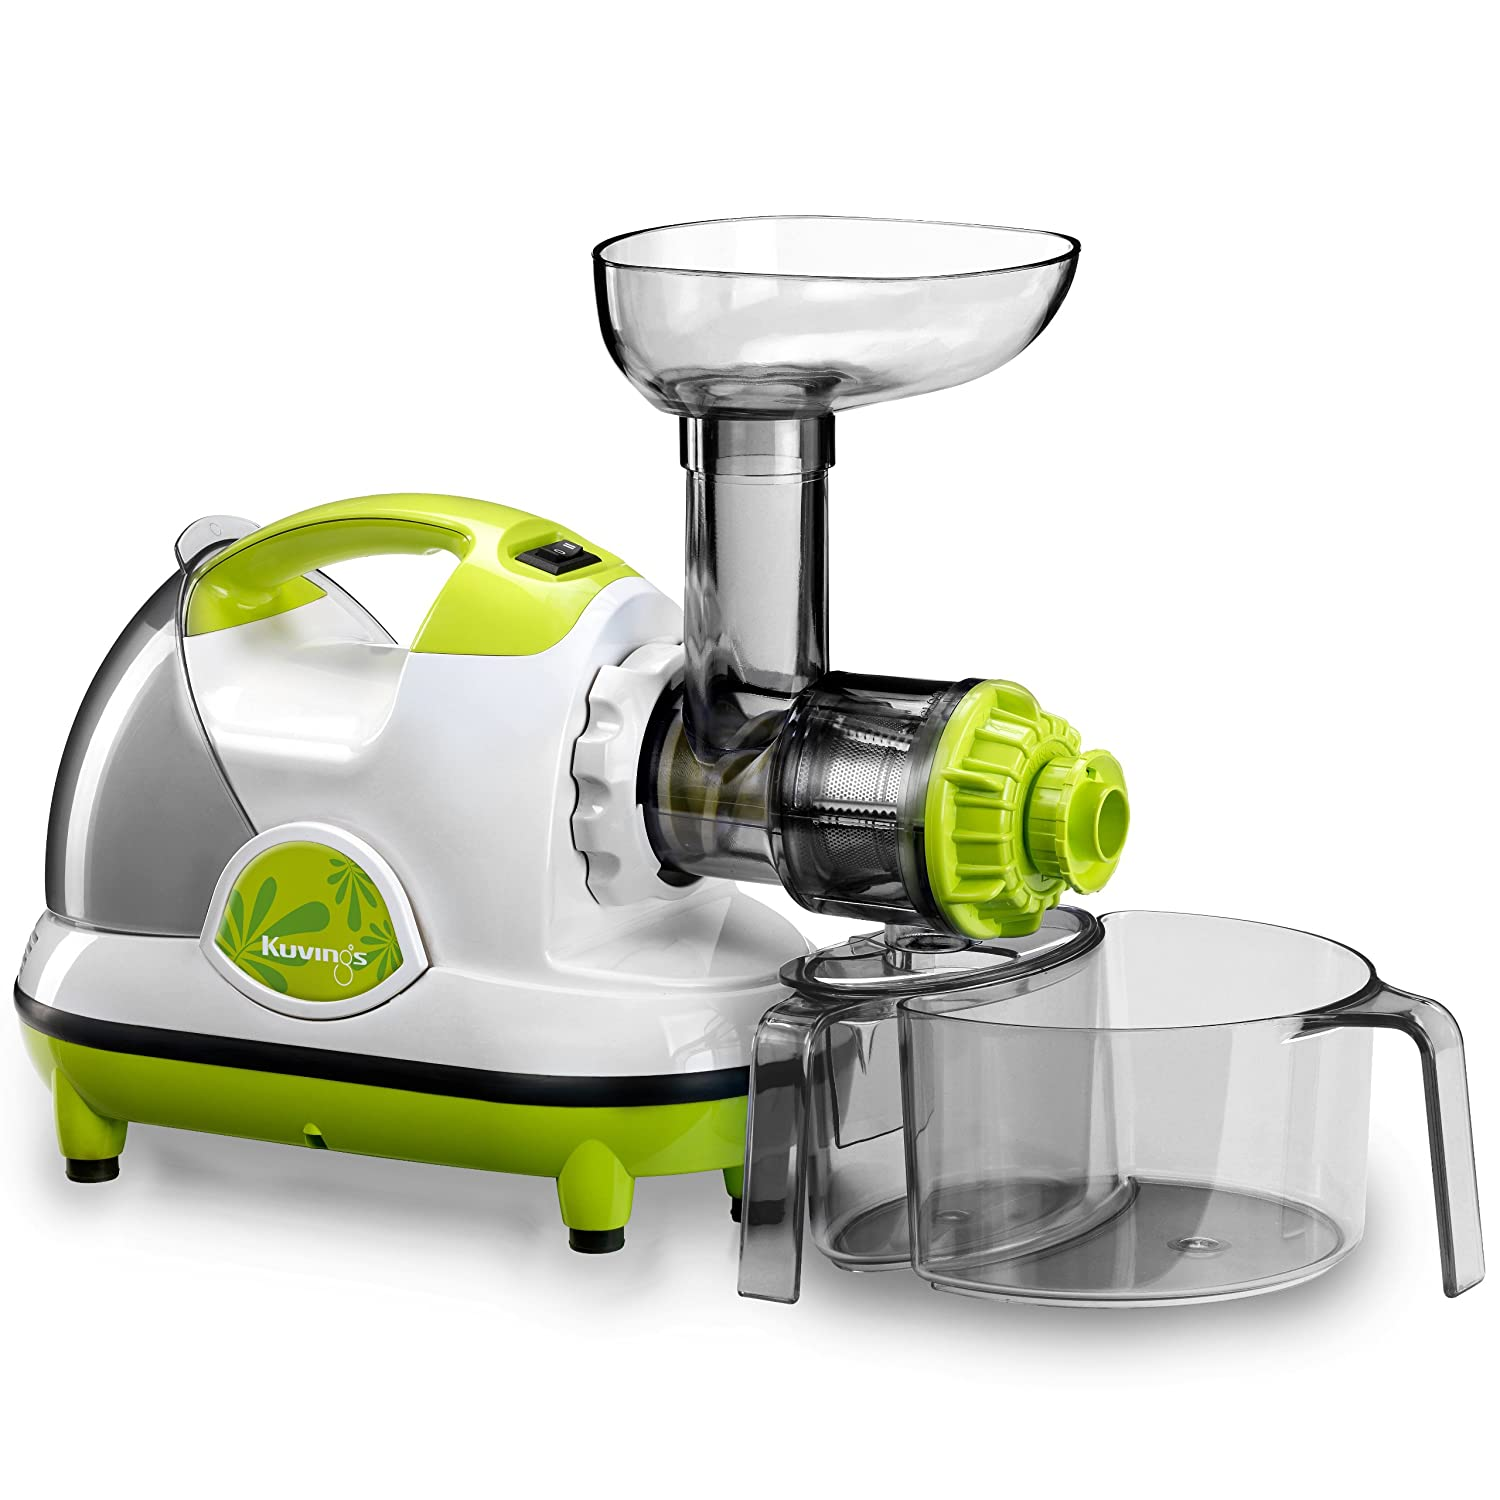 The Best Slow Juicer 2015 : 81M6PfZyMNL._SL1500_.jpg